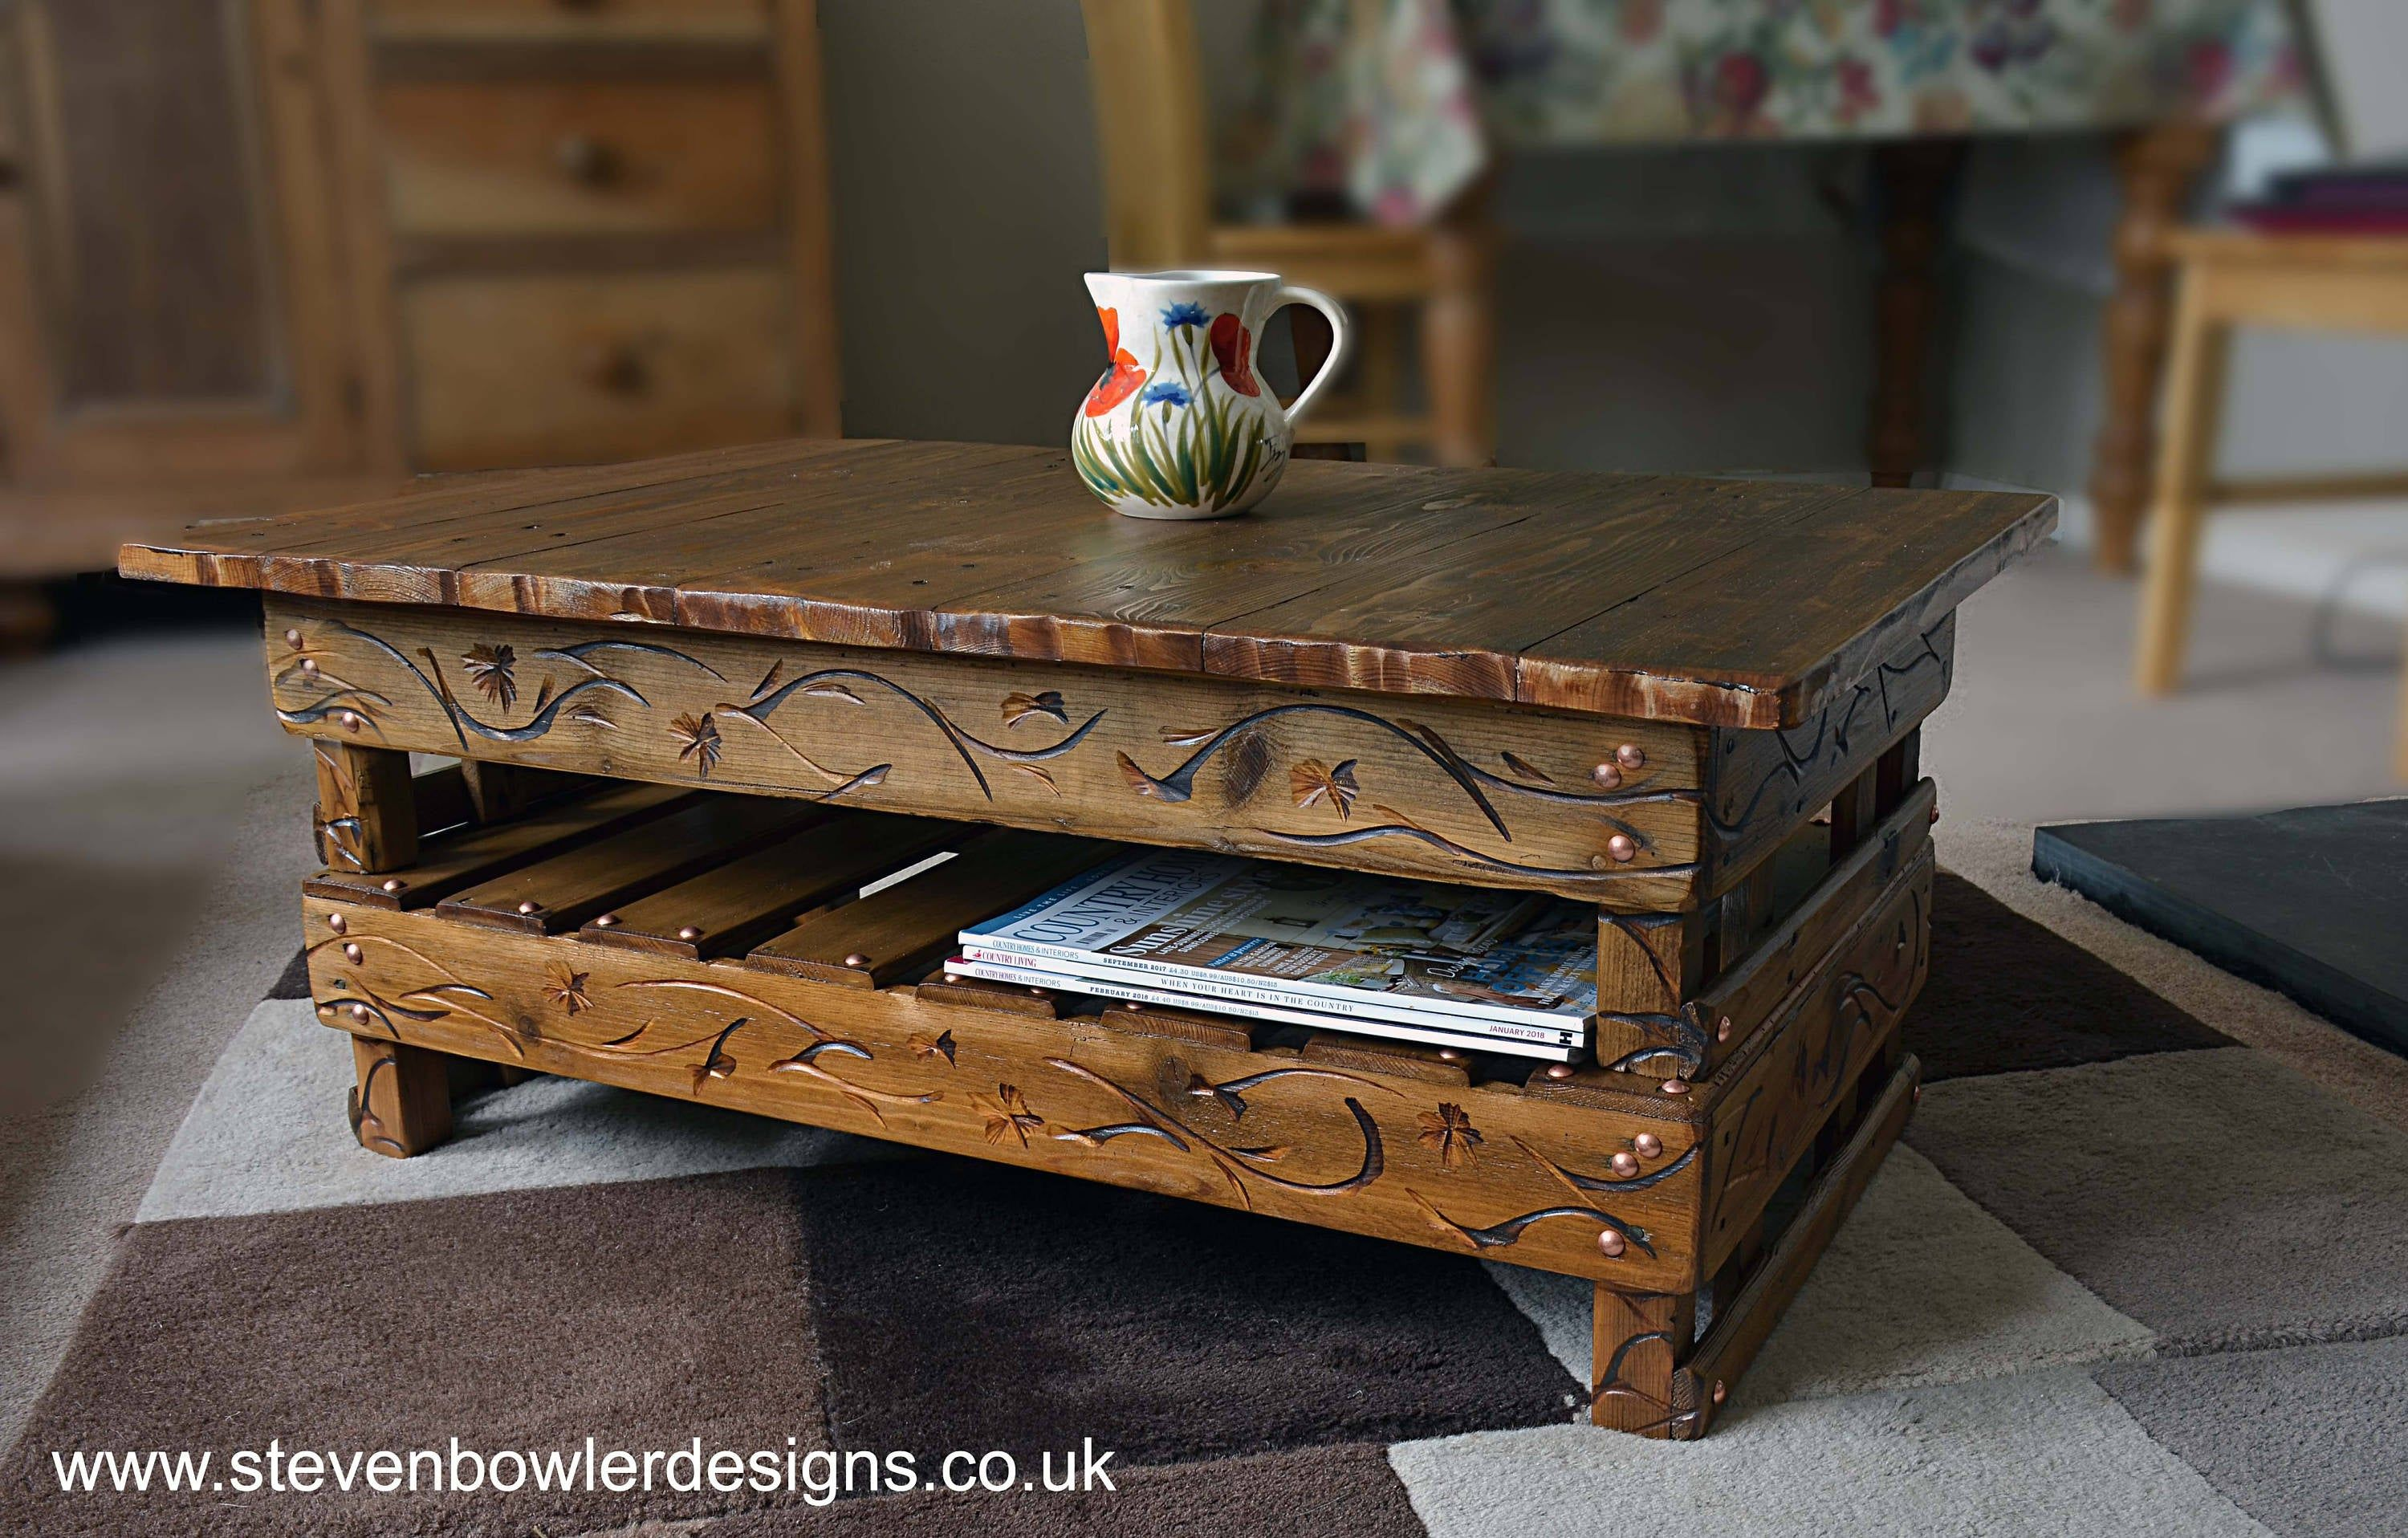 Country Cottage Farmhouse Reclaimed Wood Coffee Table Medium Oak Stain Handy Under Shelf St Reclaimed Wood Coffee Table Coffee Table Wood Rustic Reclaimed Wood [ 1916 x 3000 Pixel ]